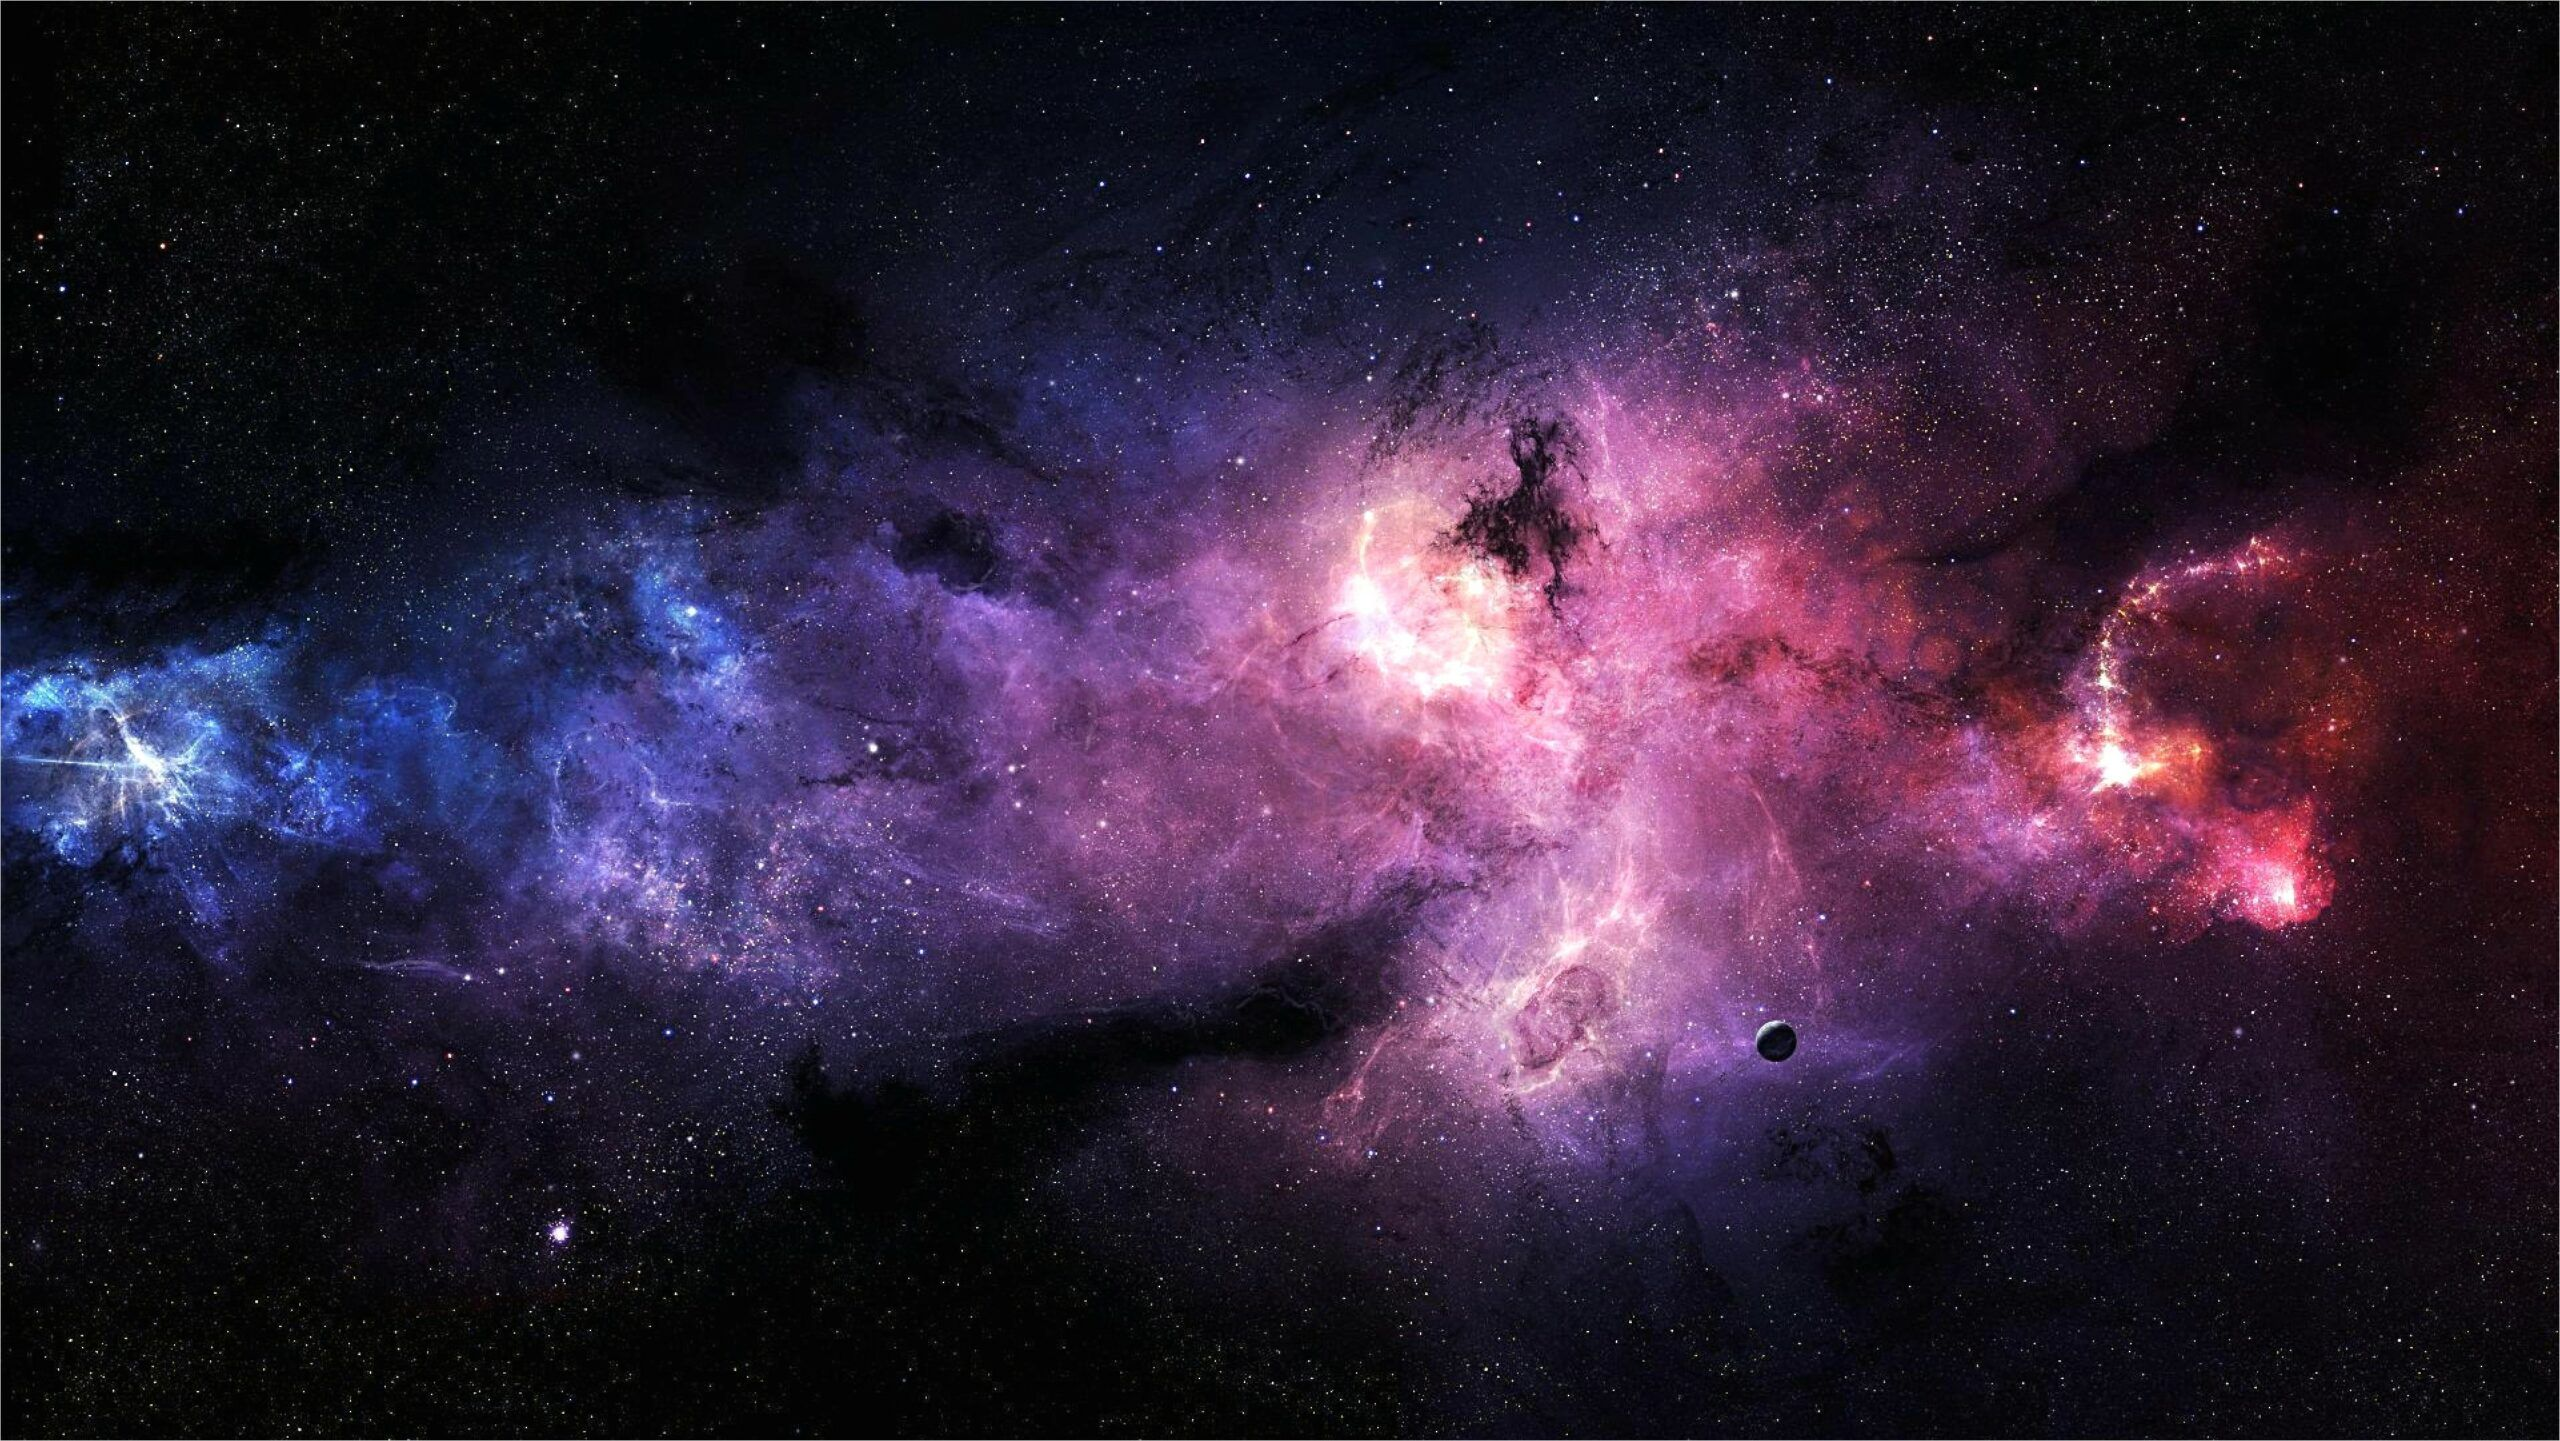 4k Hdr Space Wallpaper In 2020 Wallpaper Space Purple Galaxy Wallpaper Outer Space Wallpaper